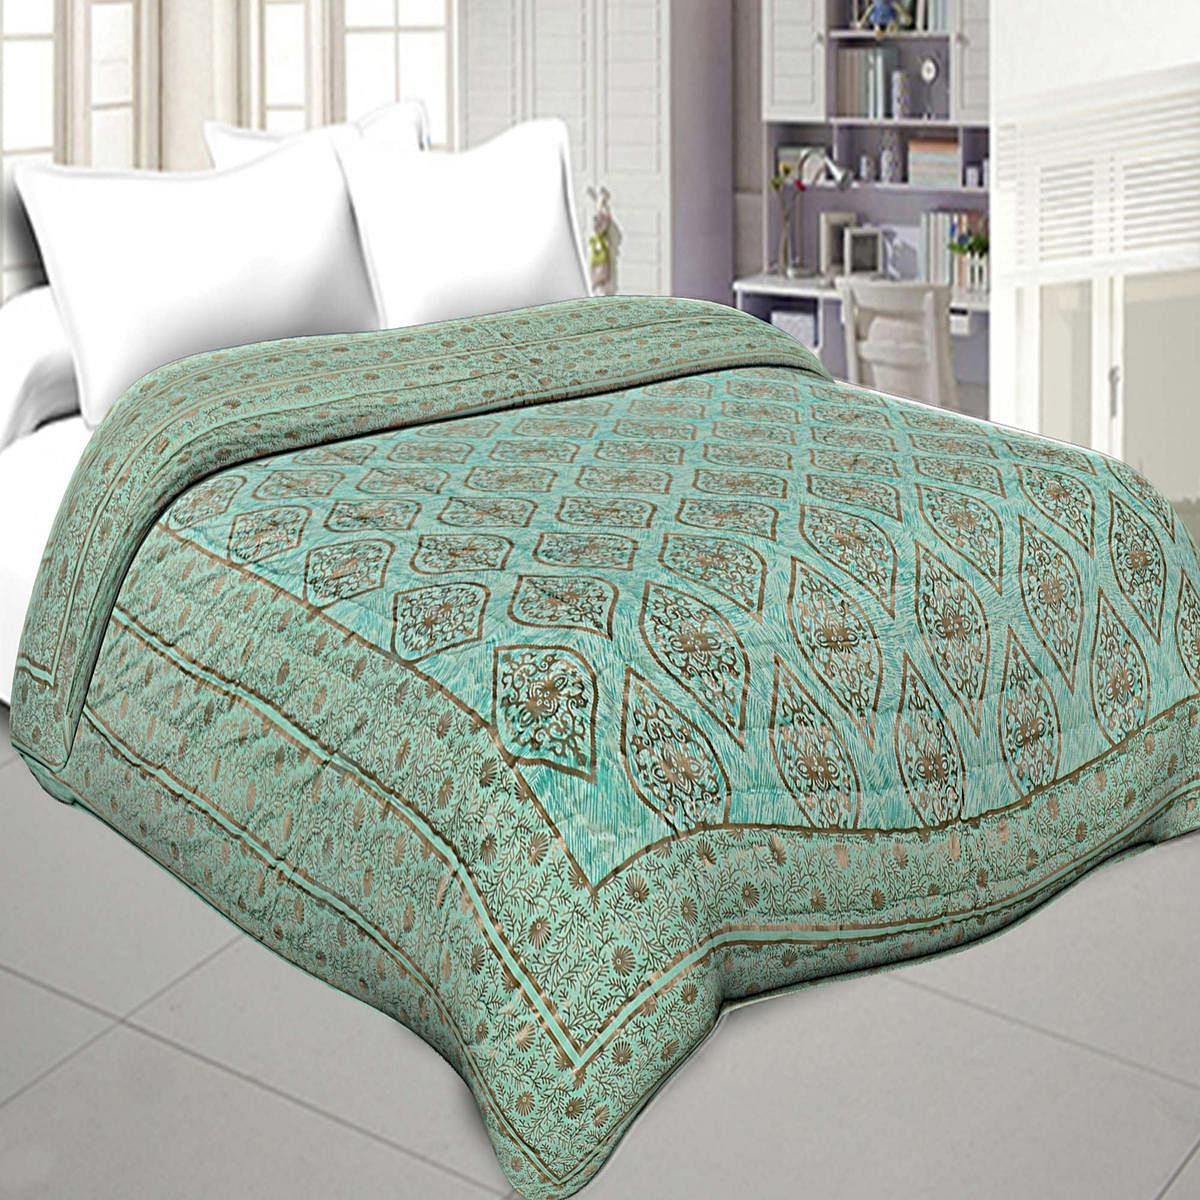 Classy Pista Green Colored Golden With Retro Pattern Jaipuri Printed Double Bed Razai